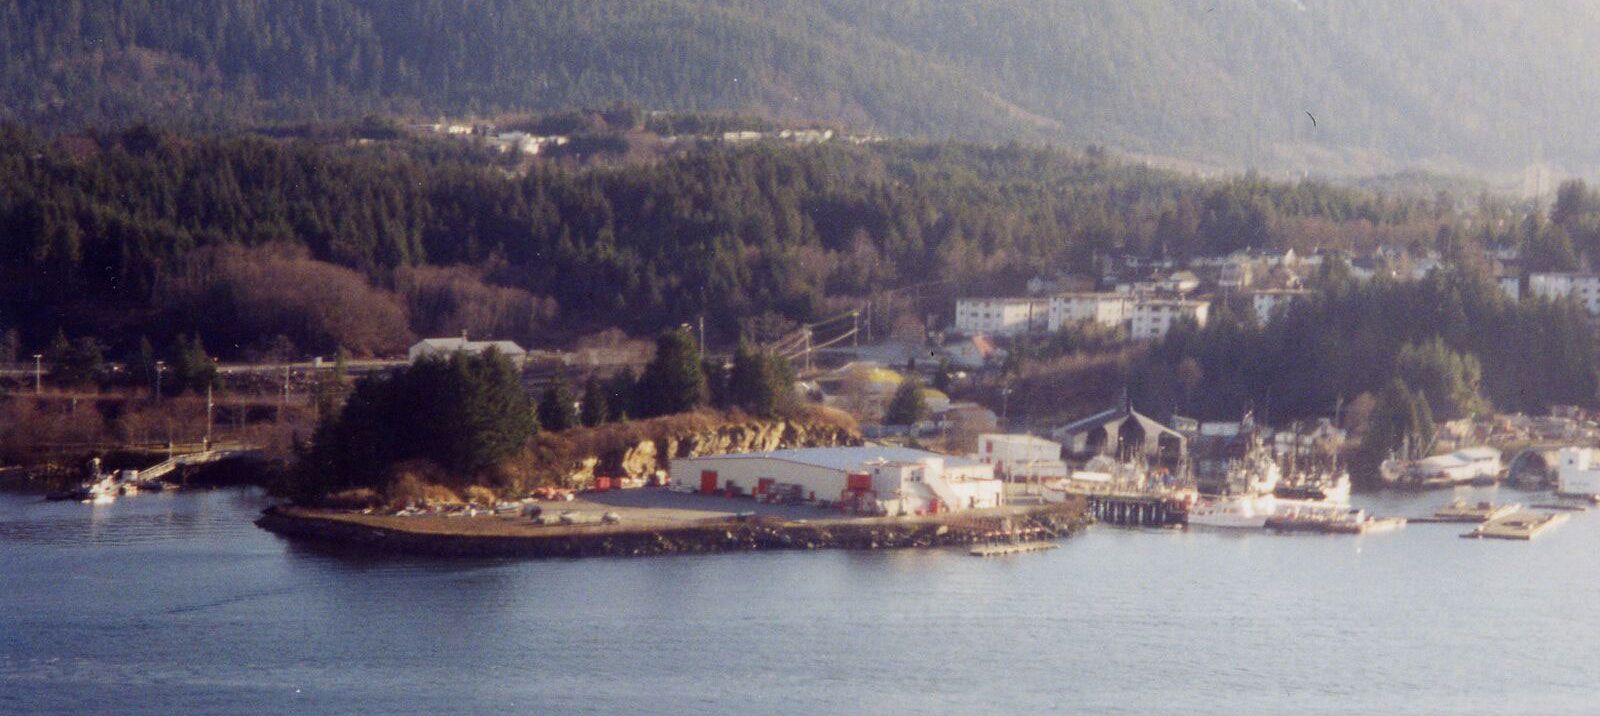 Aerial view of Seal Cove Cannery buildings with water in the foreground and wooded hills in the background